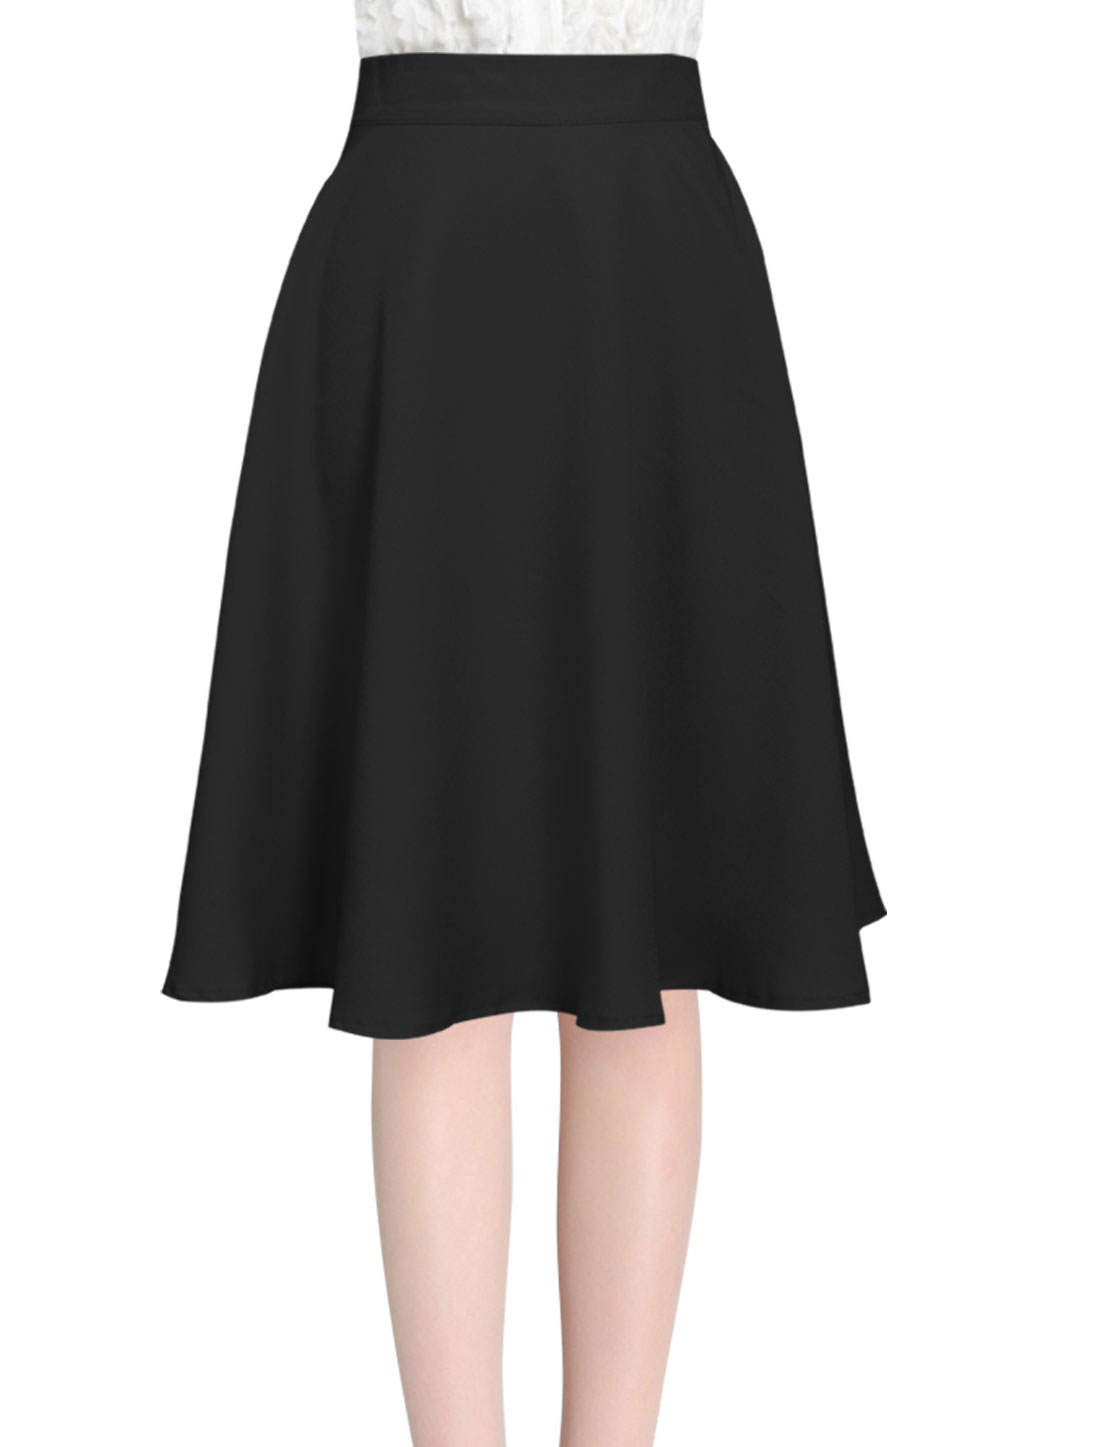 Knee Length Round Hem Fashion Full Skirt for Ladies Black XS